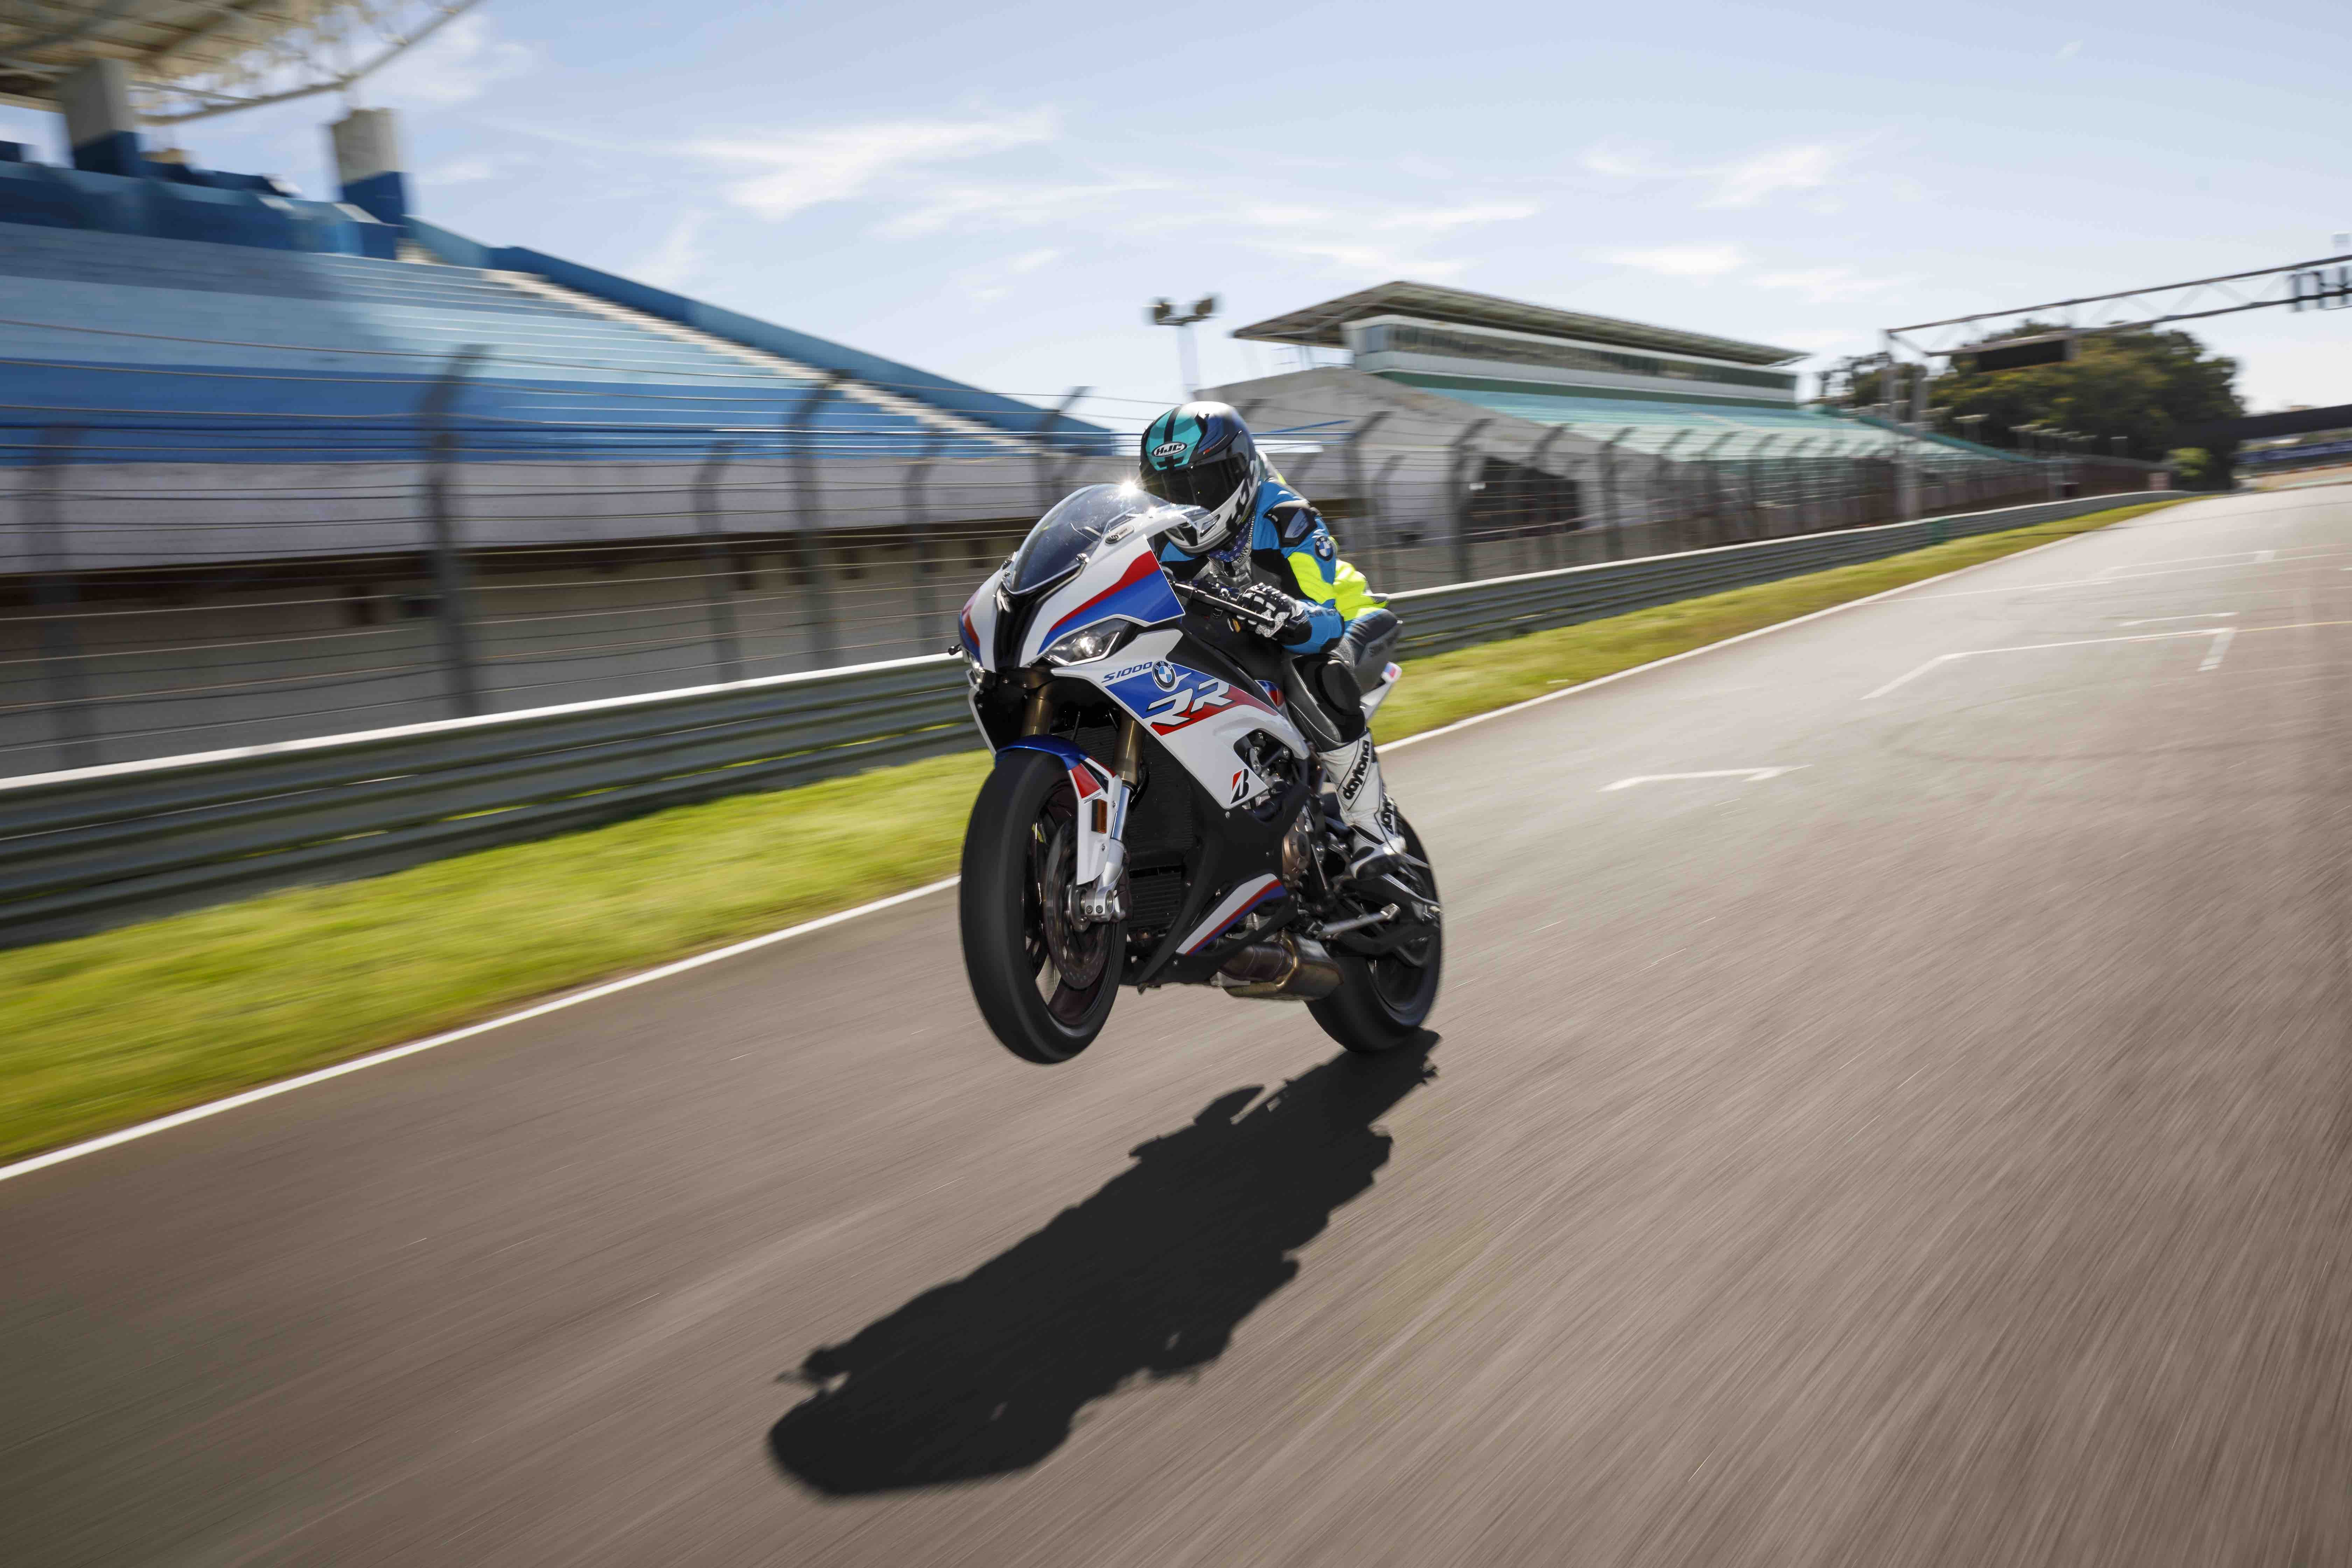 BMW S1000RR 2019 Wheelie